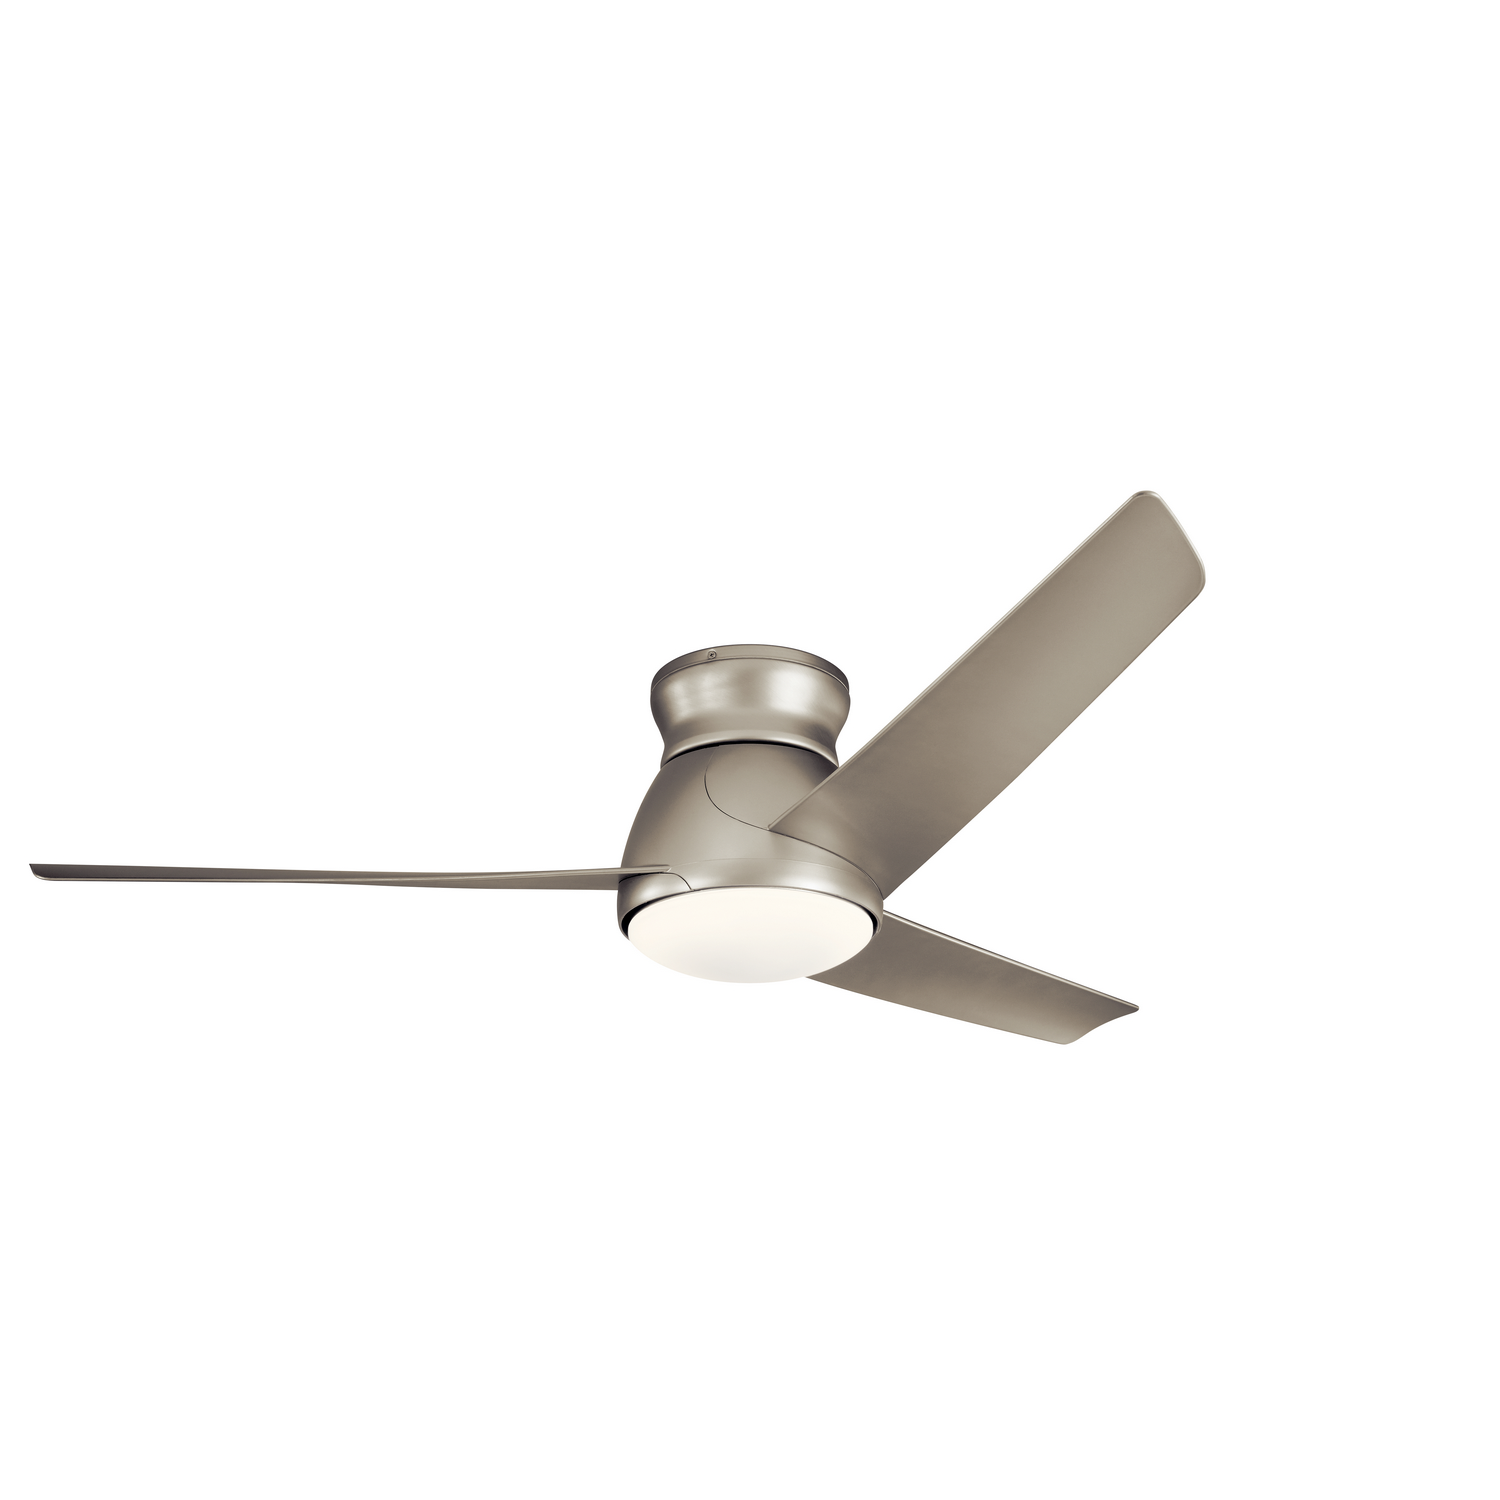 60 inchCeiling Fan from the Eris collection by Kichler 310160NI